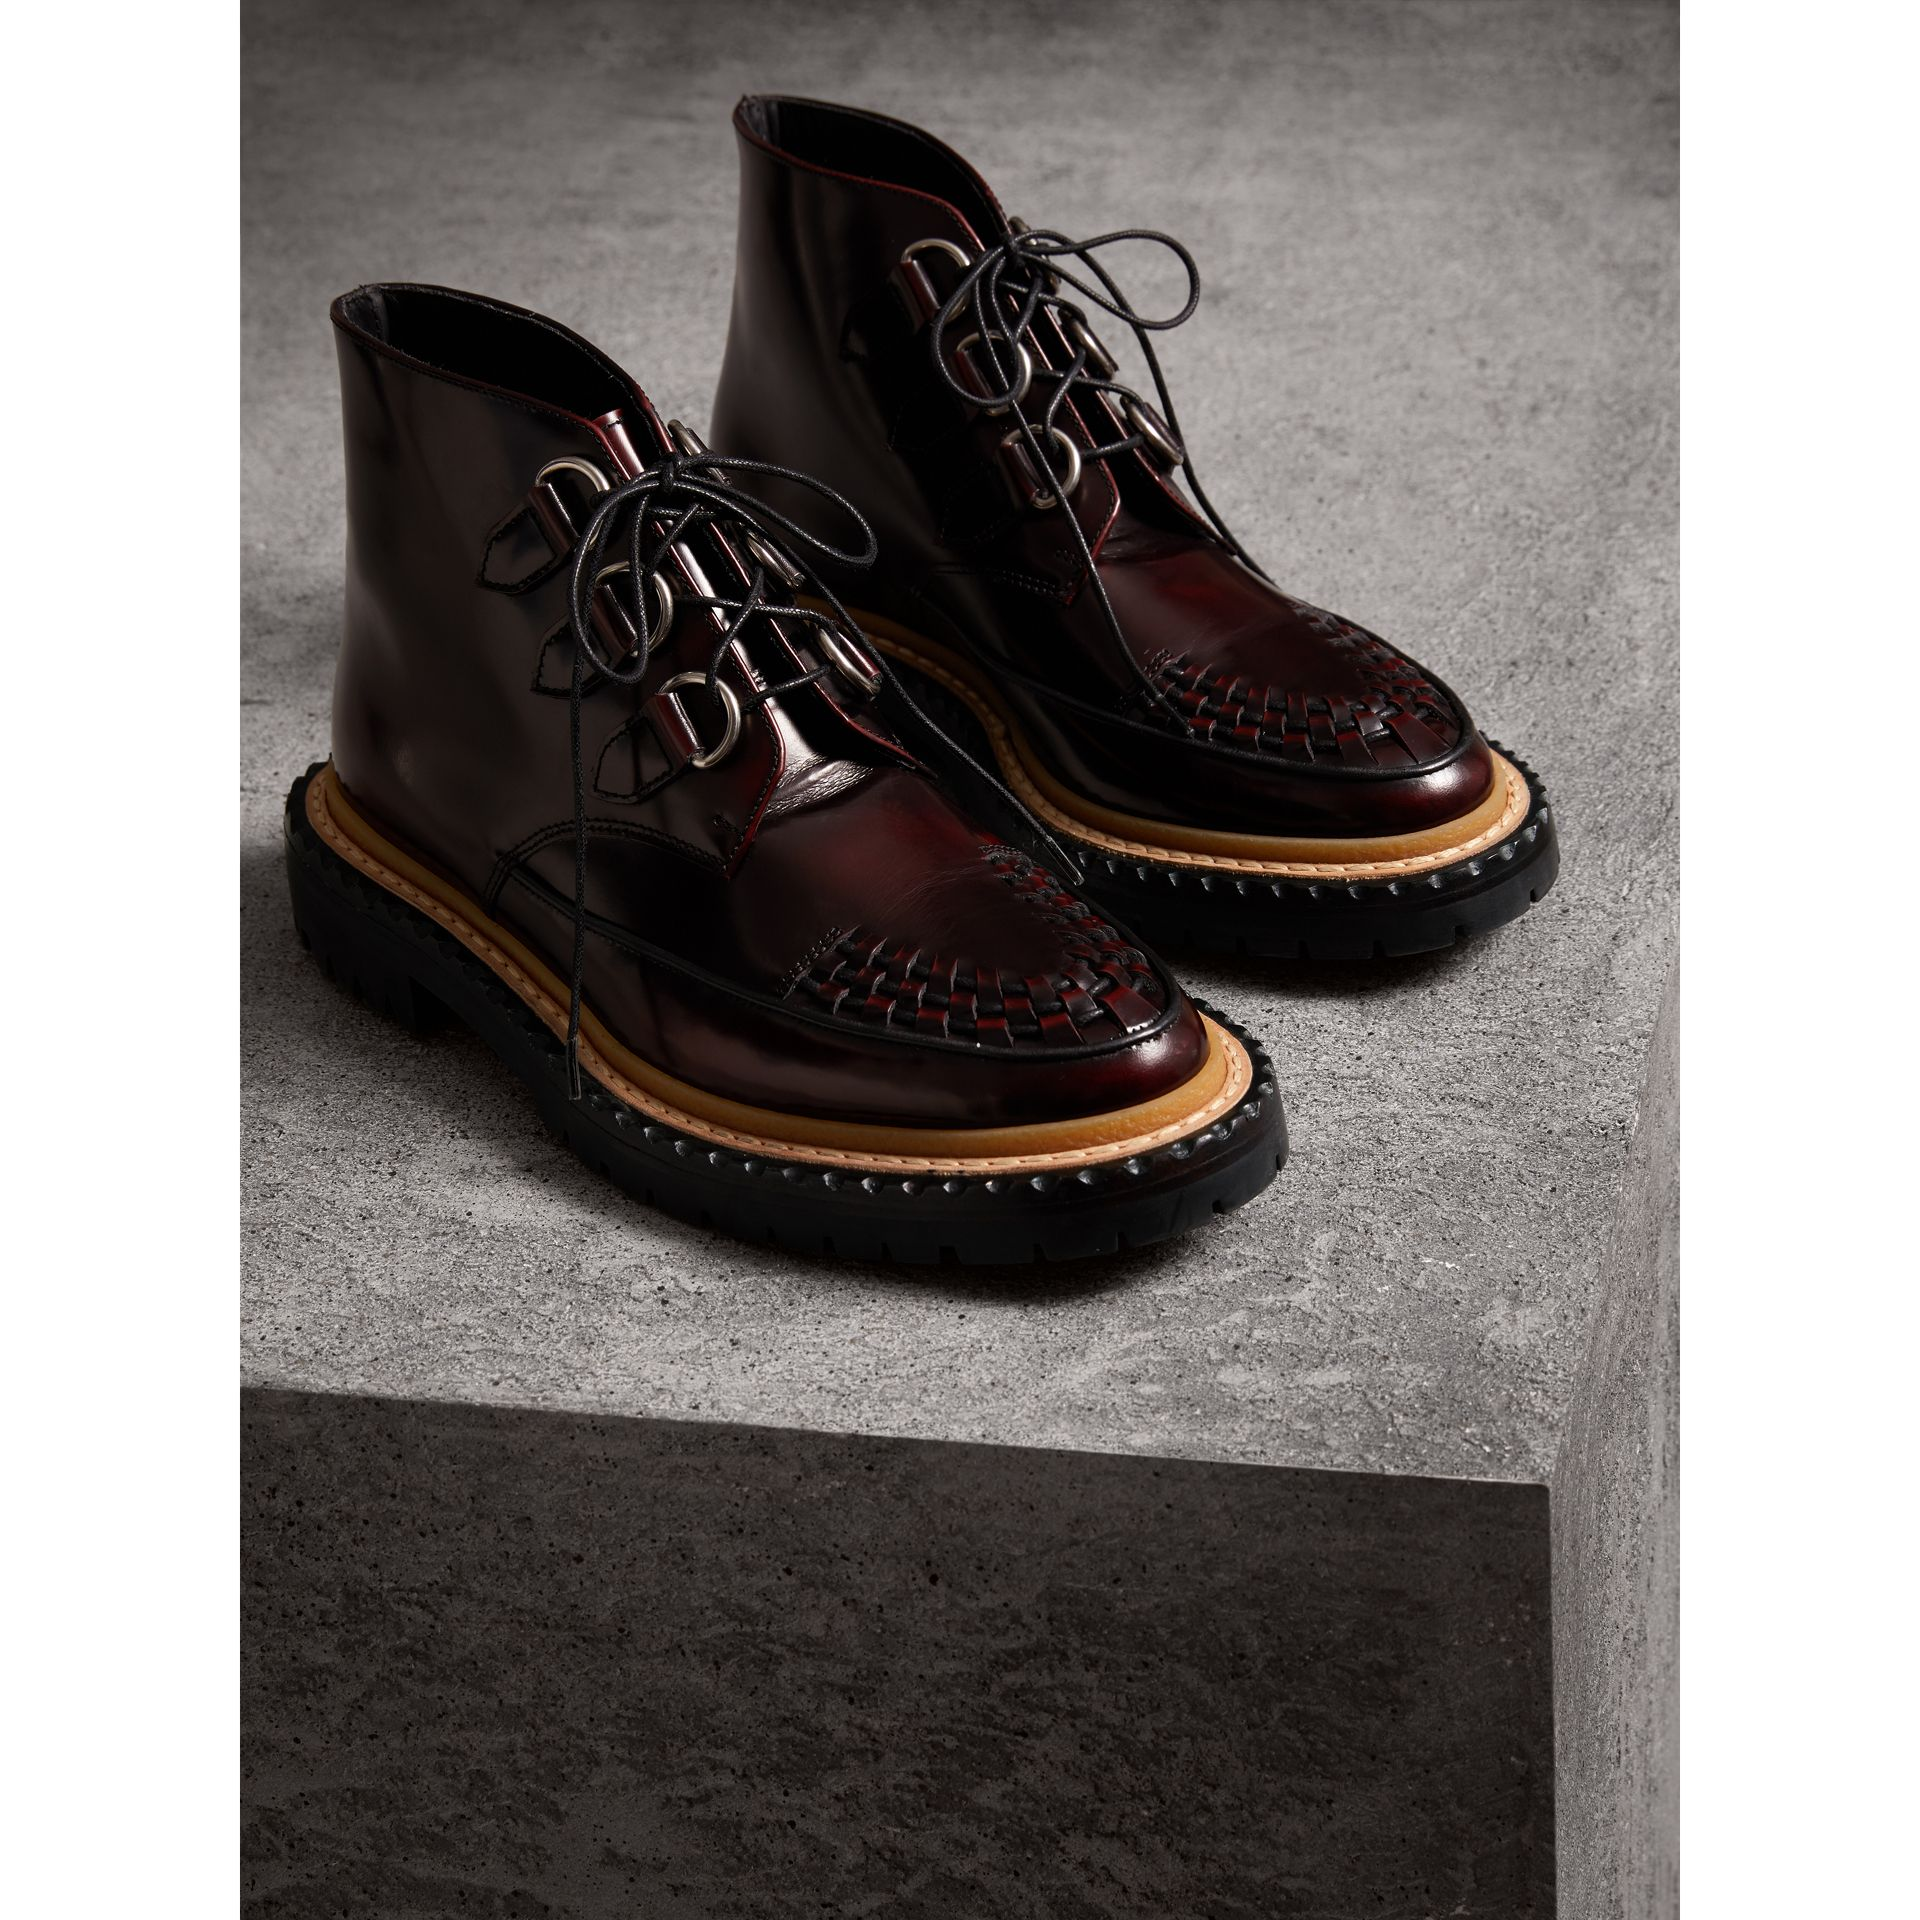 Woven-toe Polished Leather Ankle Boots in Bordeaux - Women | Burberry Hong Kong - gallery image 3